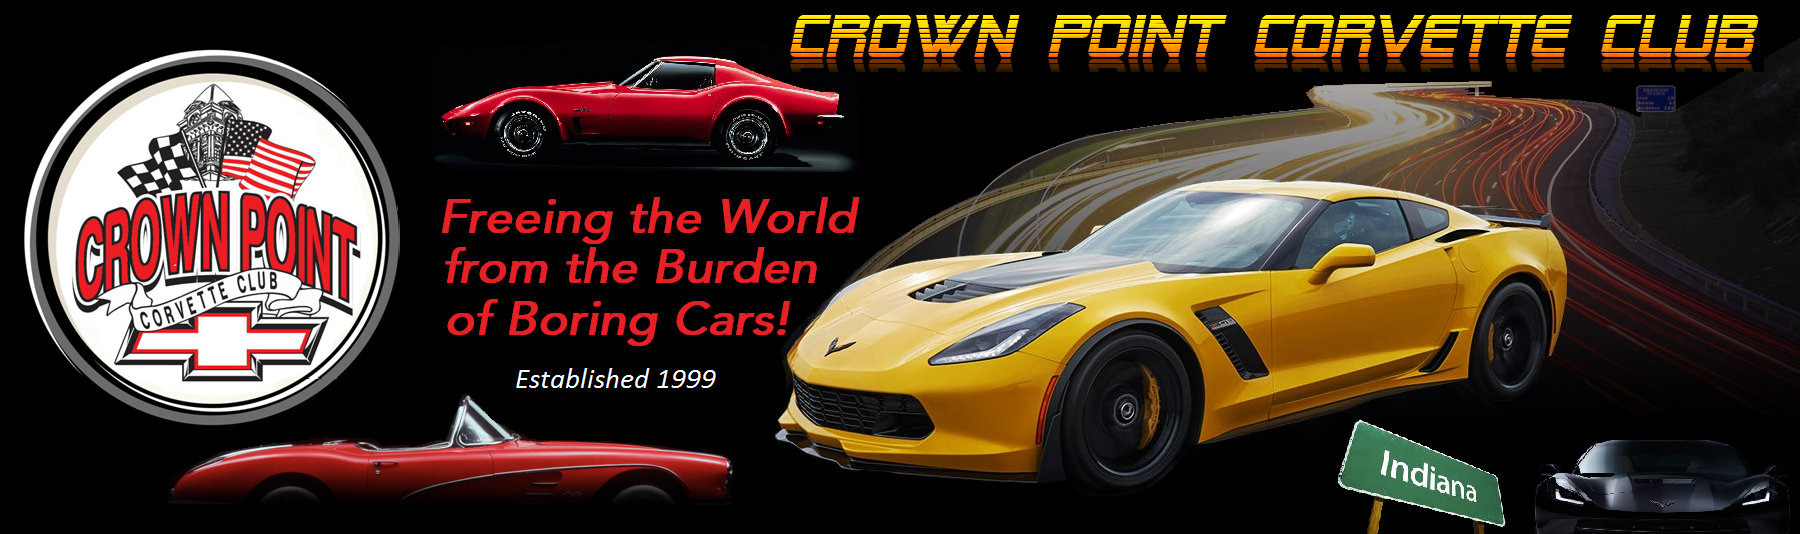 Crown Point Corvette Club